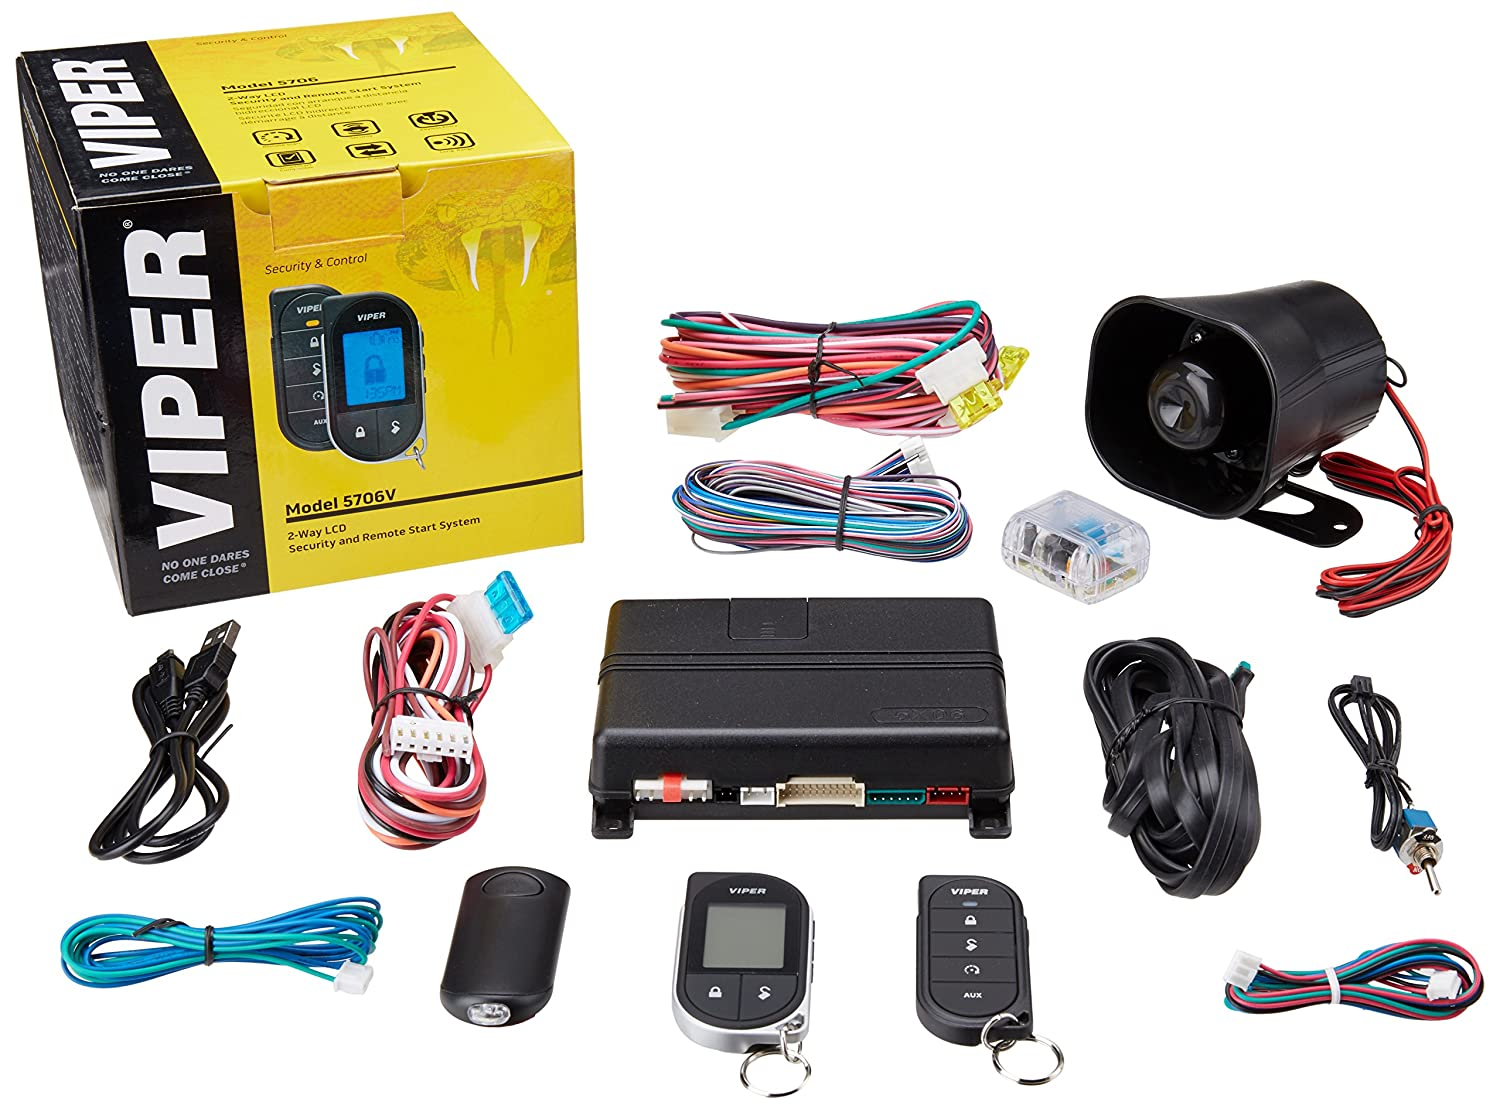 Viper 5706v 2 Way Car Security With Remote Start System Subaru Starter Diagram Cell Phones Accessories